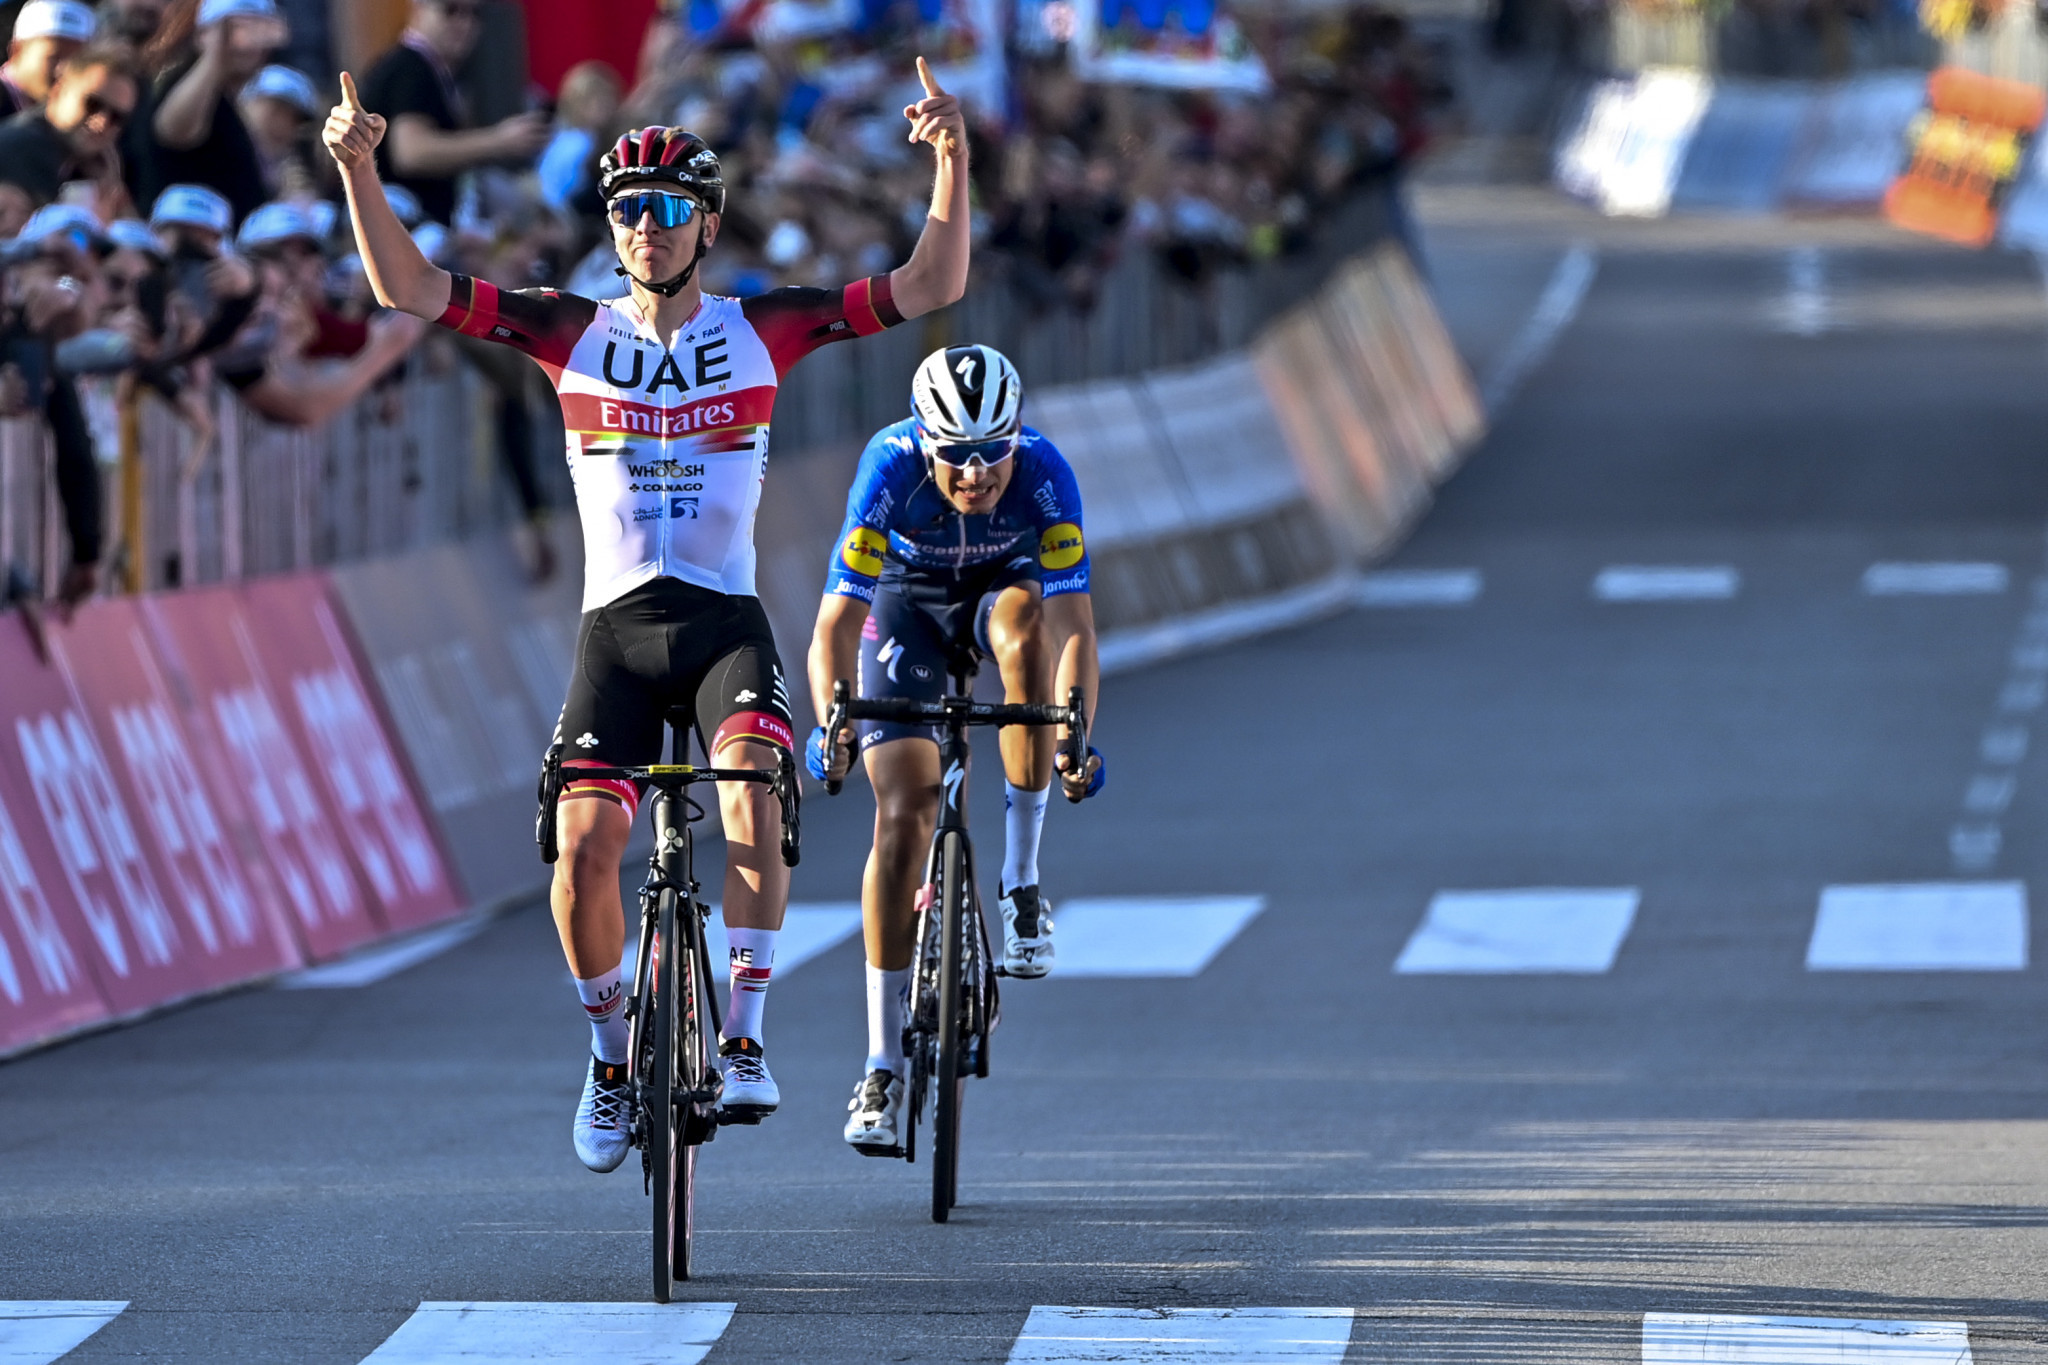 Pogačar outsprints Masnada to claim Il Lombardia victory and second Monument triumph of career